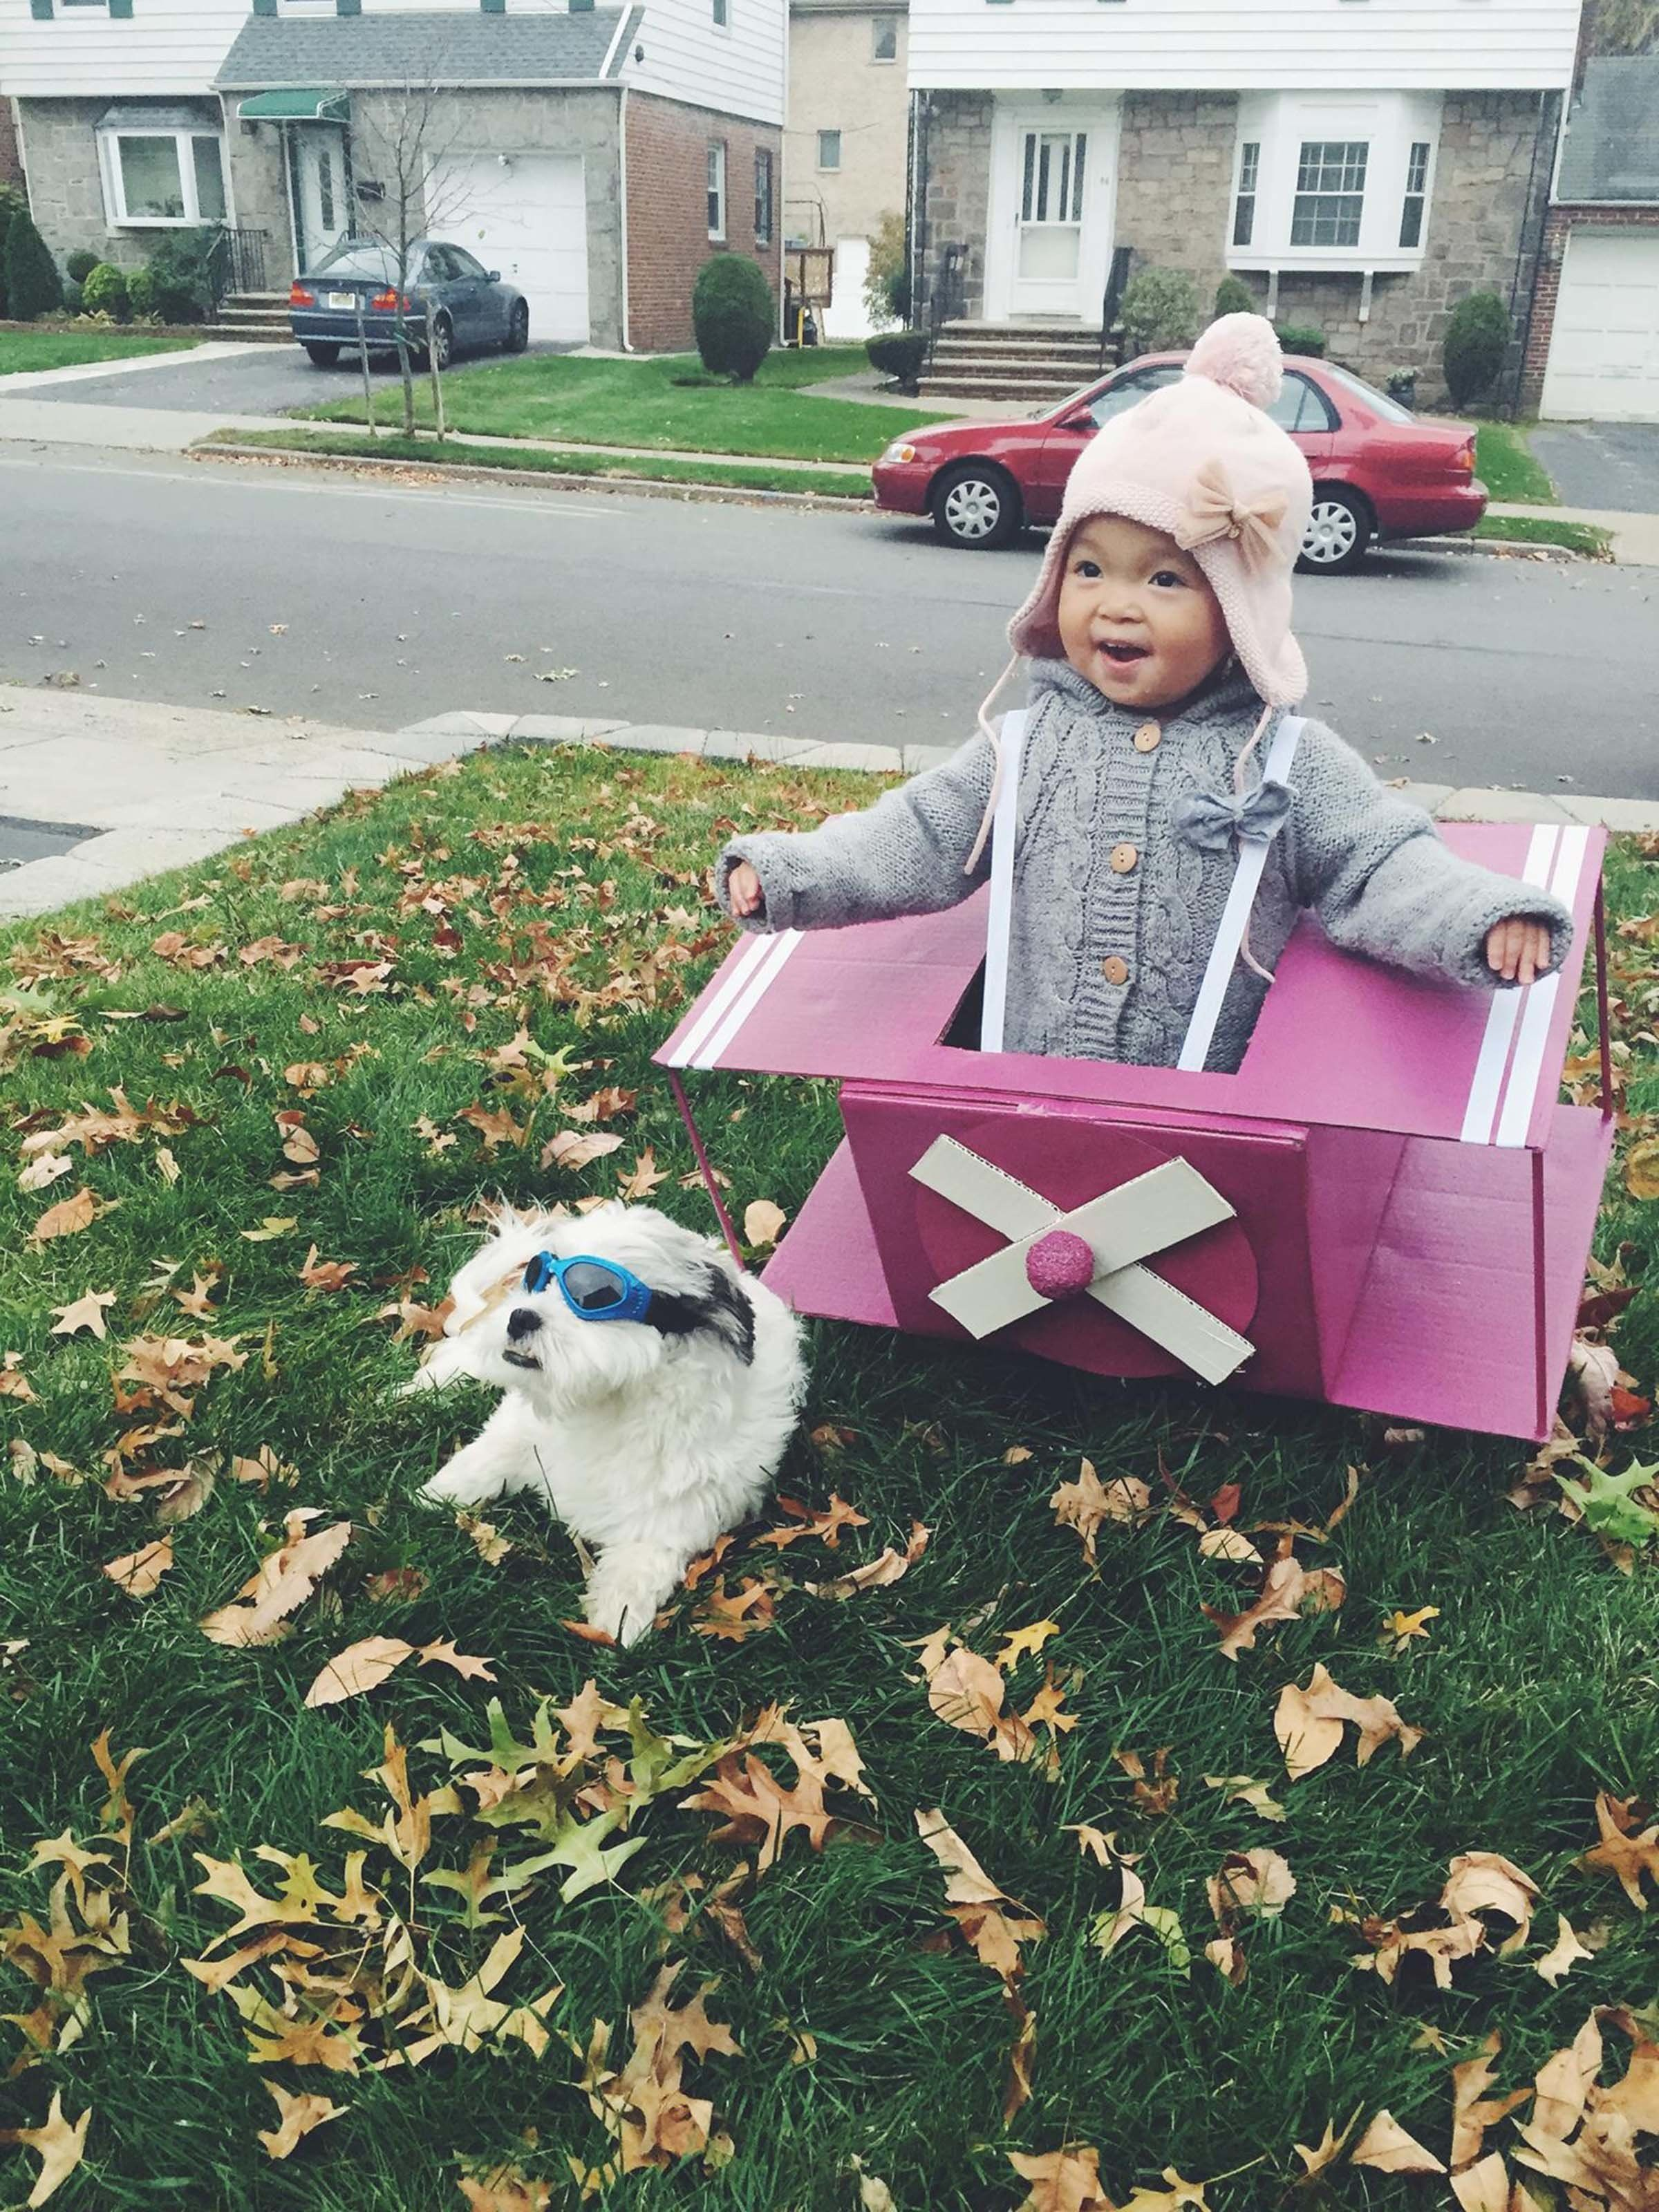 Courtesy of Stephanie Tsai Kim  sc 1 st  HuffPost & 23 Dog And Kid Halloween Costumes That Will Make You Squeal | HuffPost